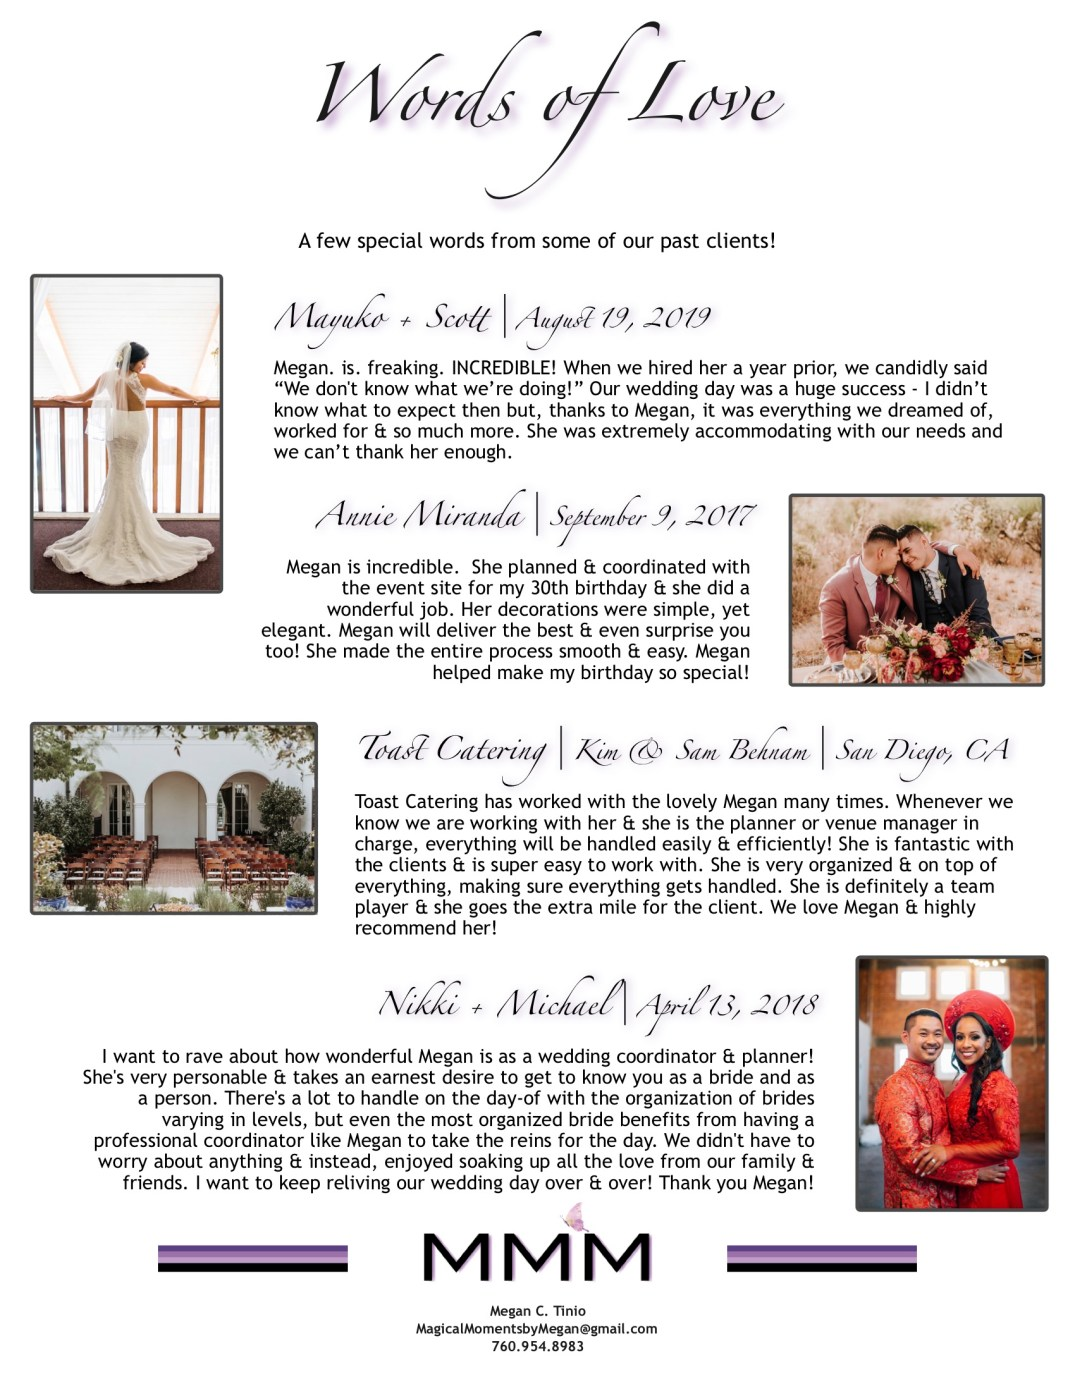 Magical Moments by Megan - Company Information Packet_5